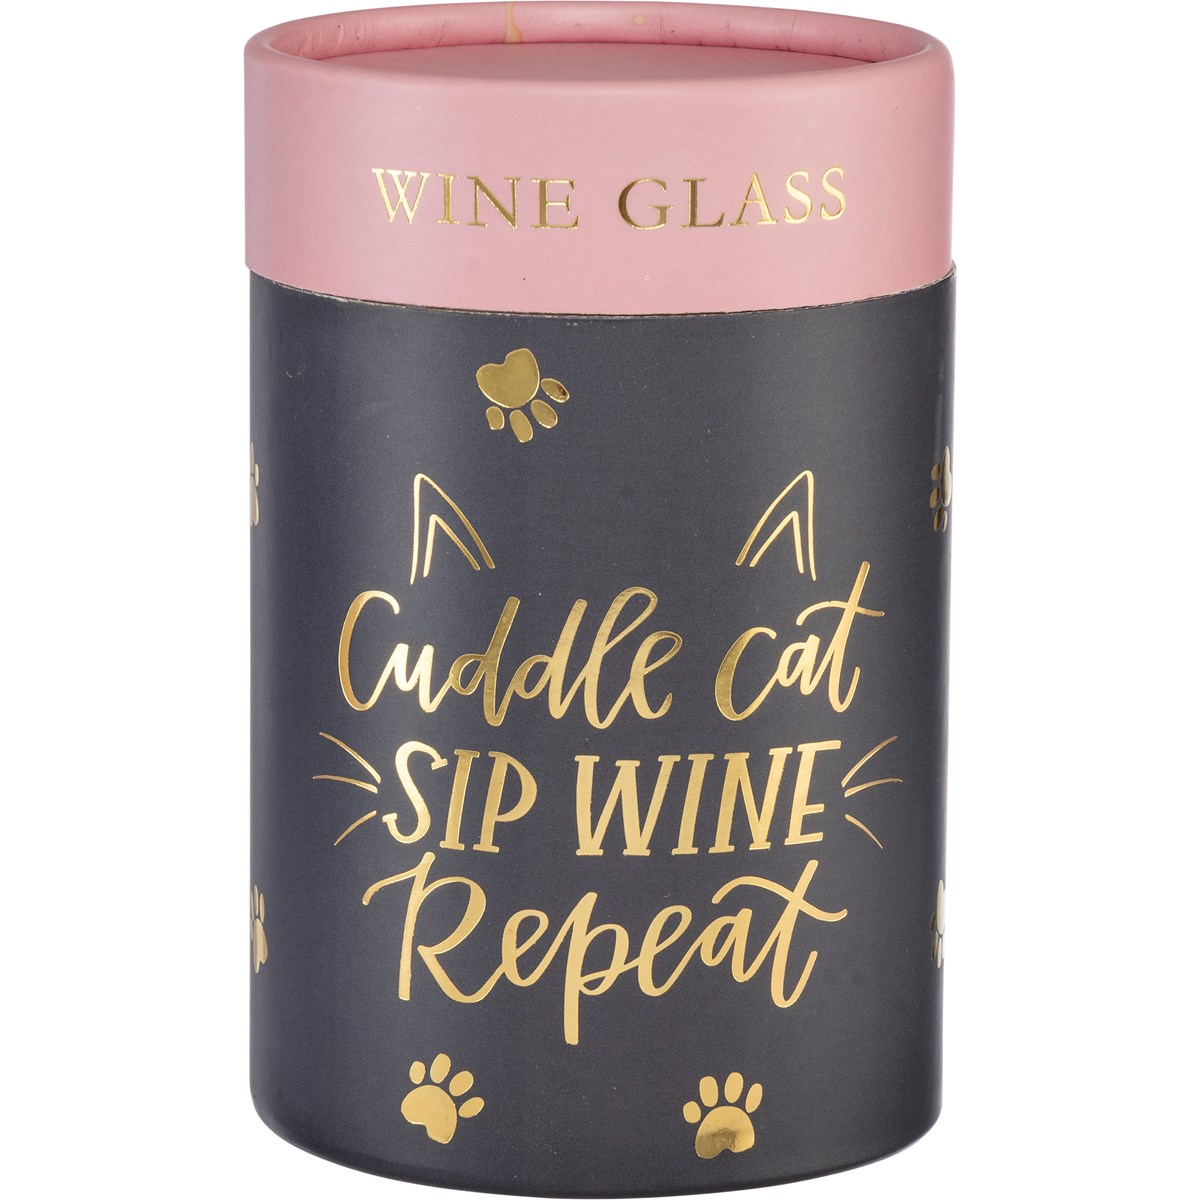 Wine Glass - Cuddle Cat Sip Wine Repeat - 15 oz. - Glass